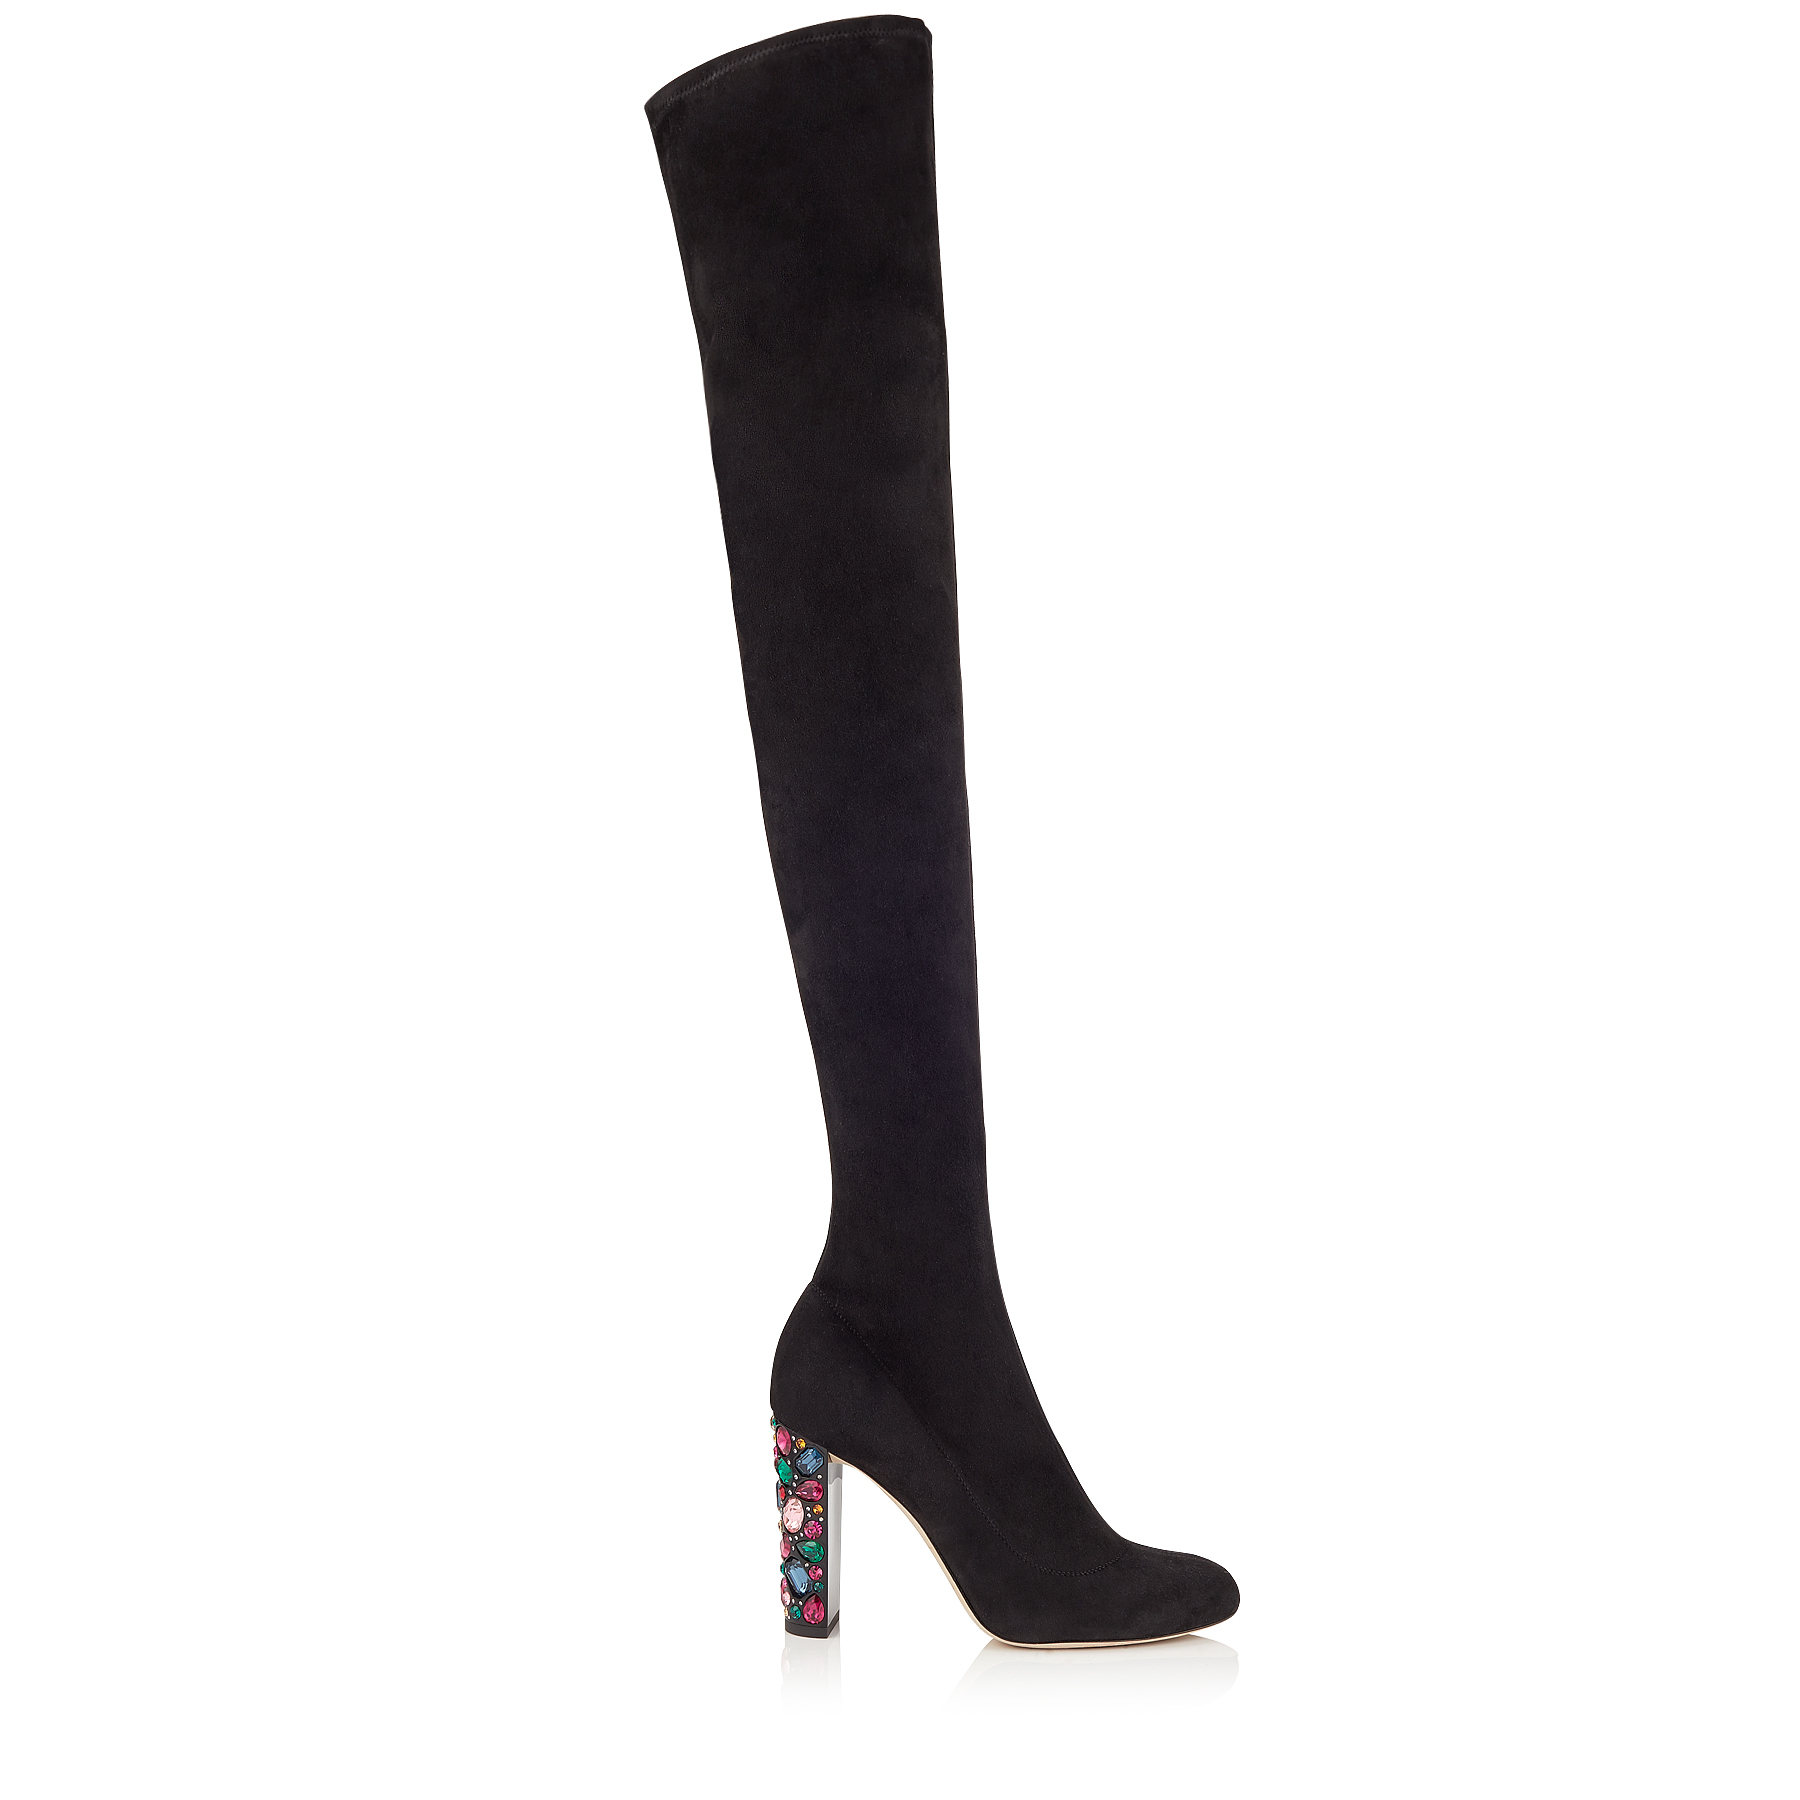 MYA 100 Black Stretch Suede Over The Knee Boots with Embellished Heel by Jimmy Choo